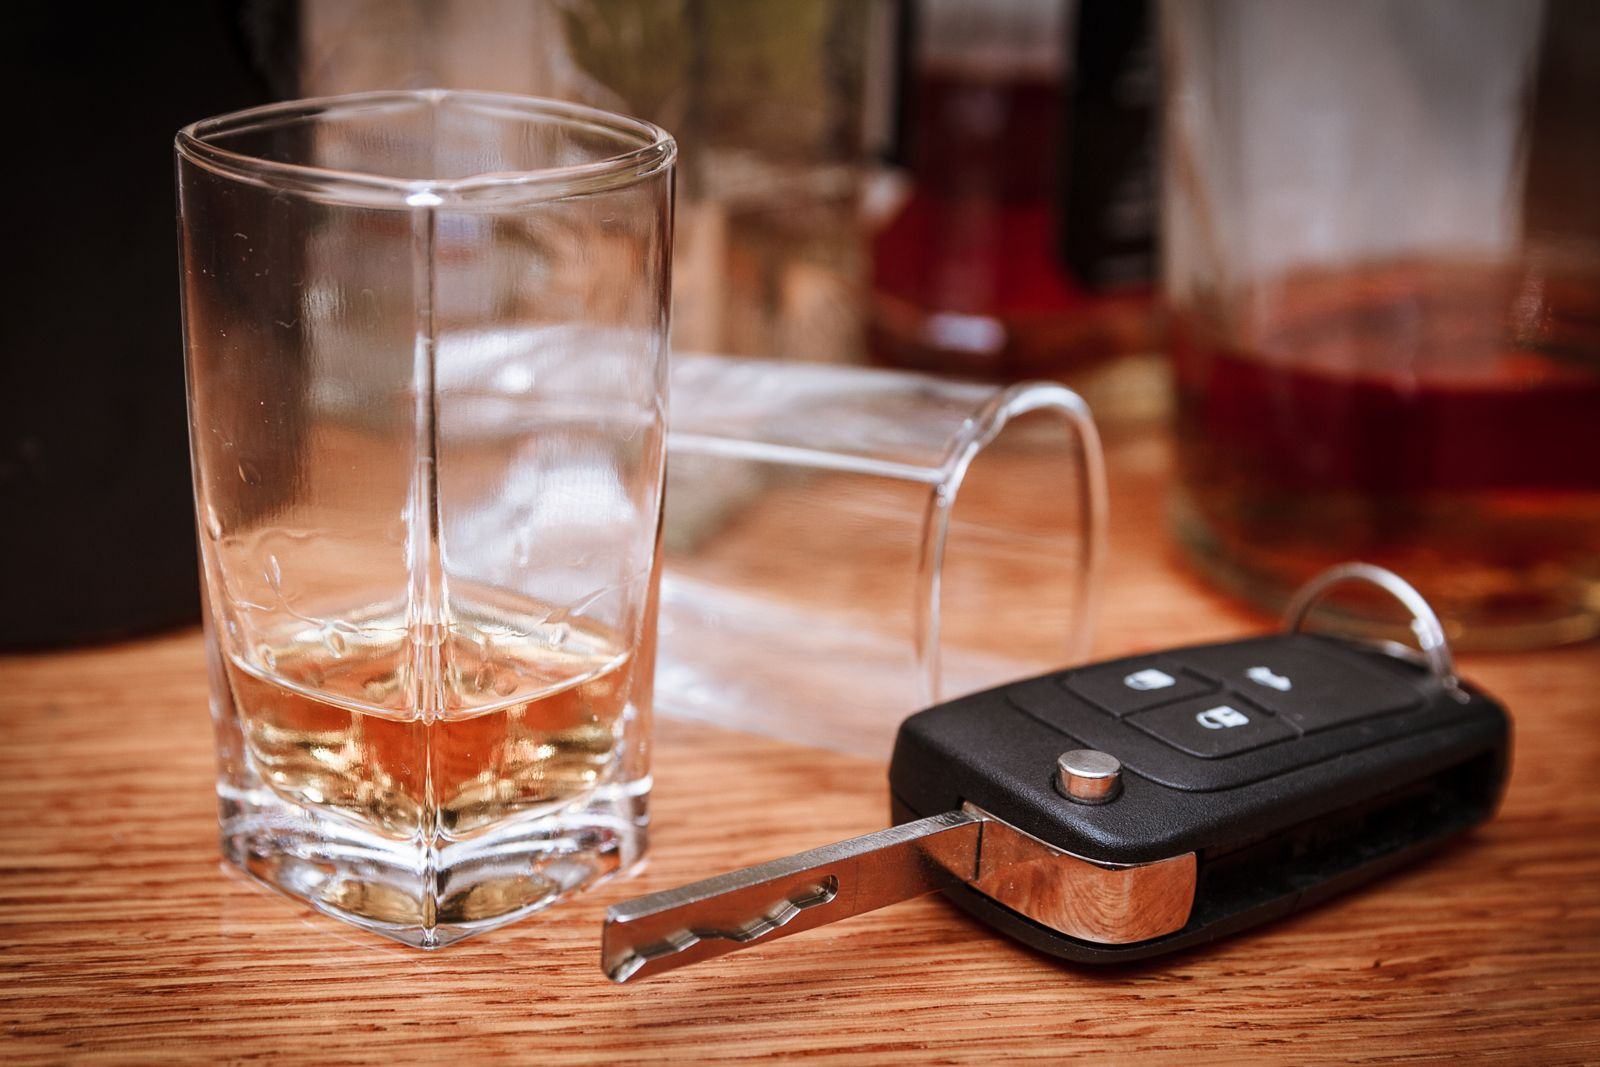 A glass of alcohol and keys sit on a table. If you've been arrested for drinking and driving you'll need a DUI lawyer